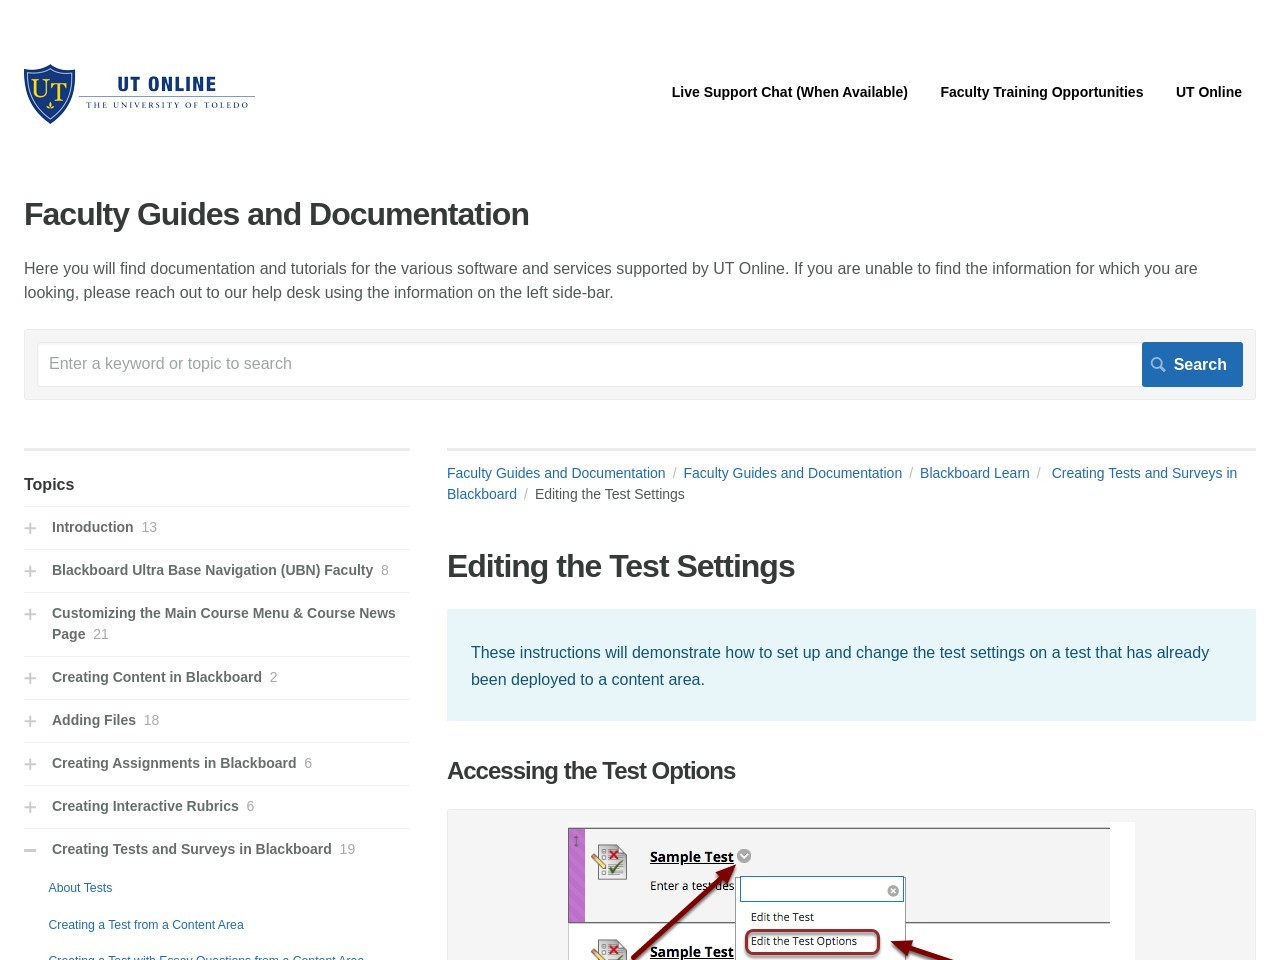 Editing the Test Settings   Blackboard Learn   Faculty Guides ...